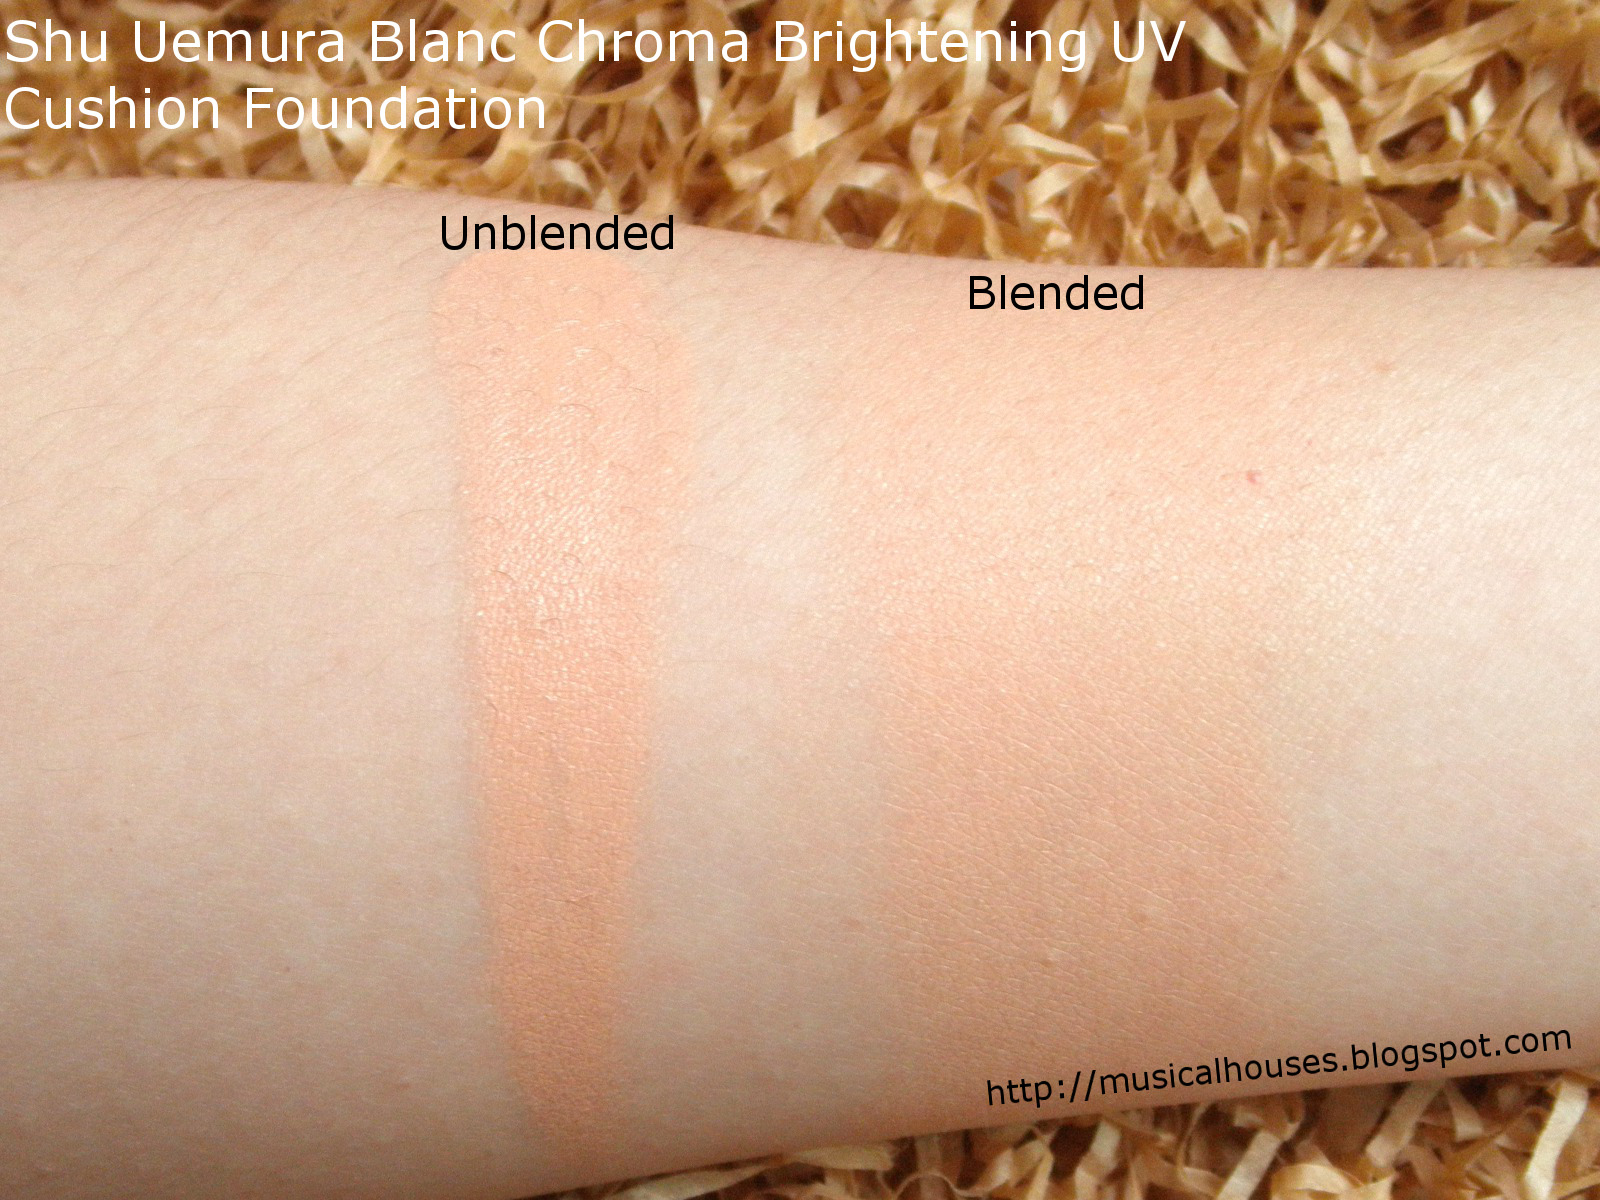 Shu Uemura Blanc Chroma Brightening UV Cushion Warm Sand Swatch